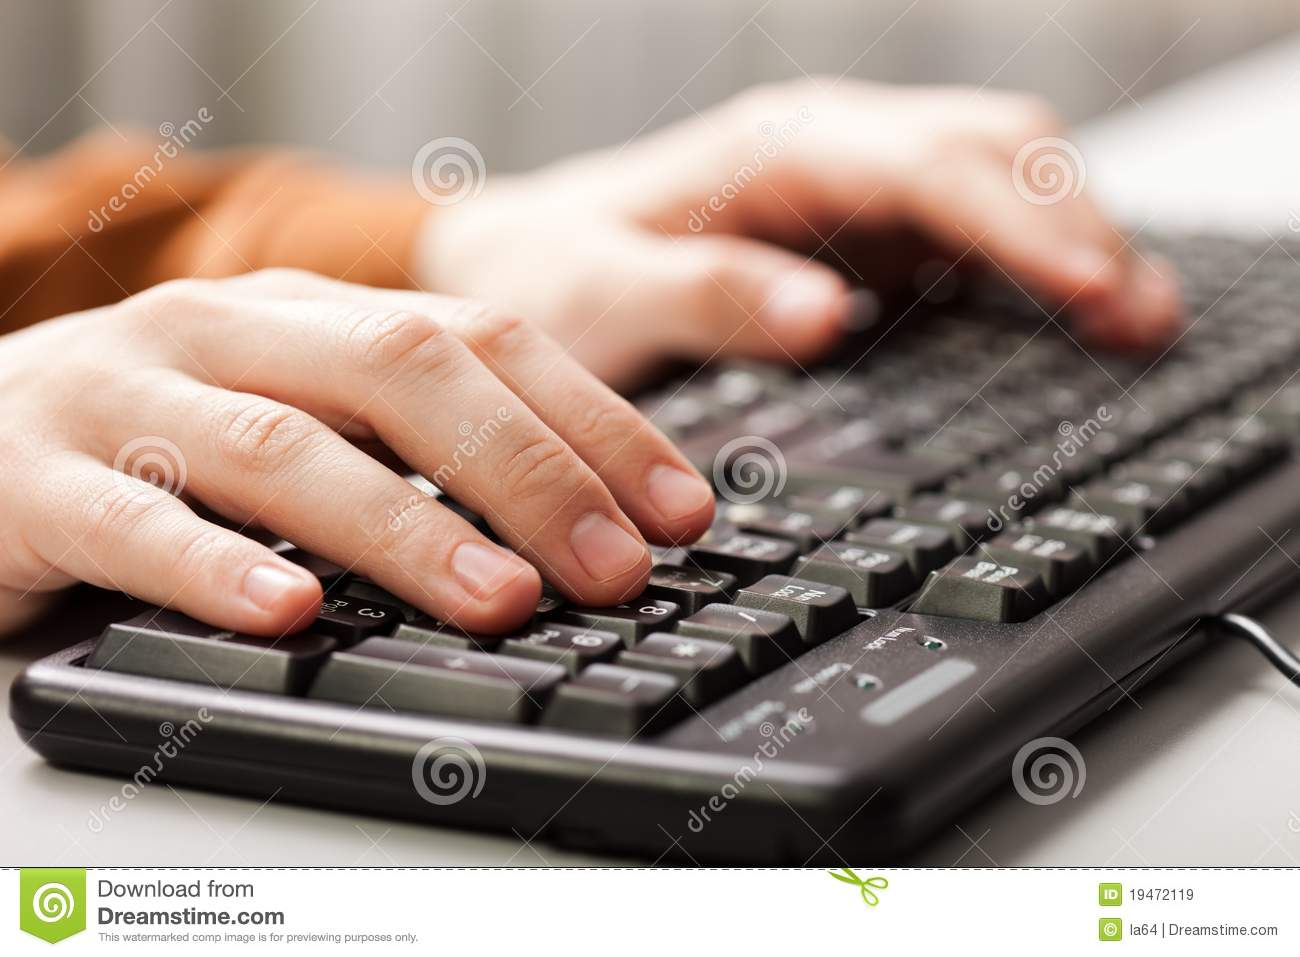 hand typing computer keyboard royalty free stock images image 19472119. Black Bedroom Furniture Sets. Home Design Ideas